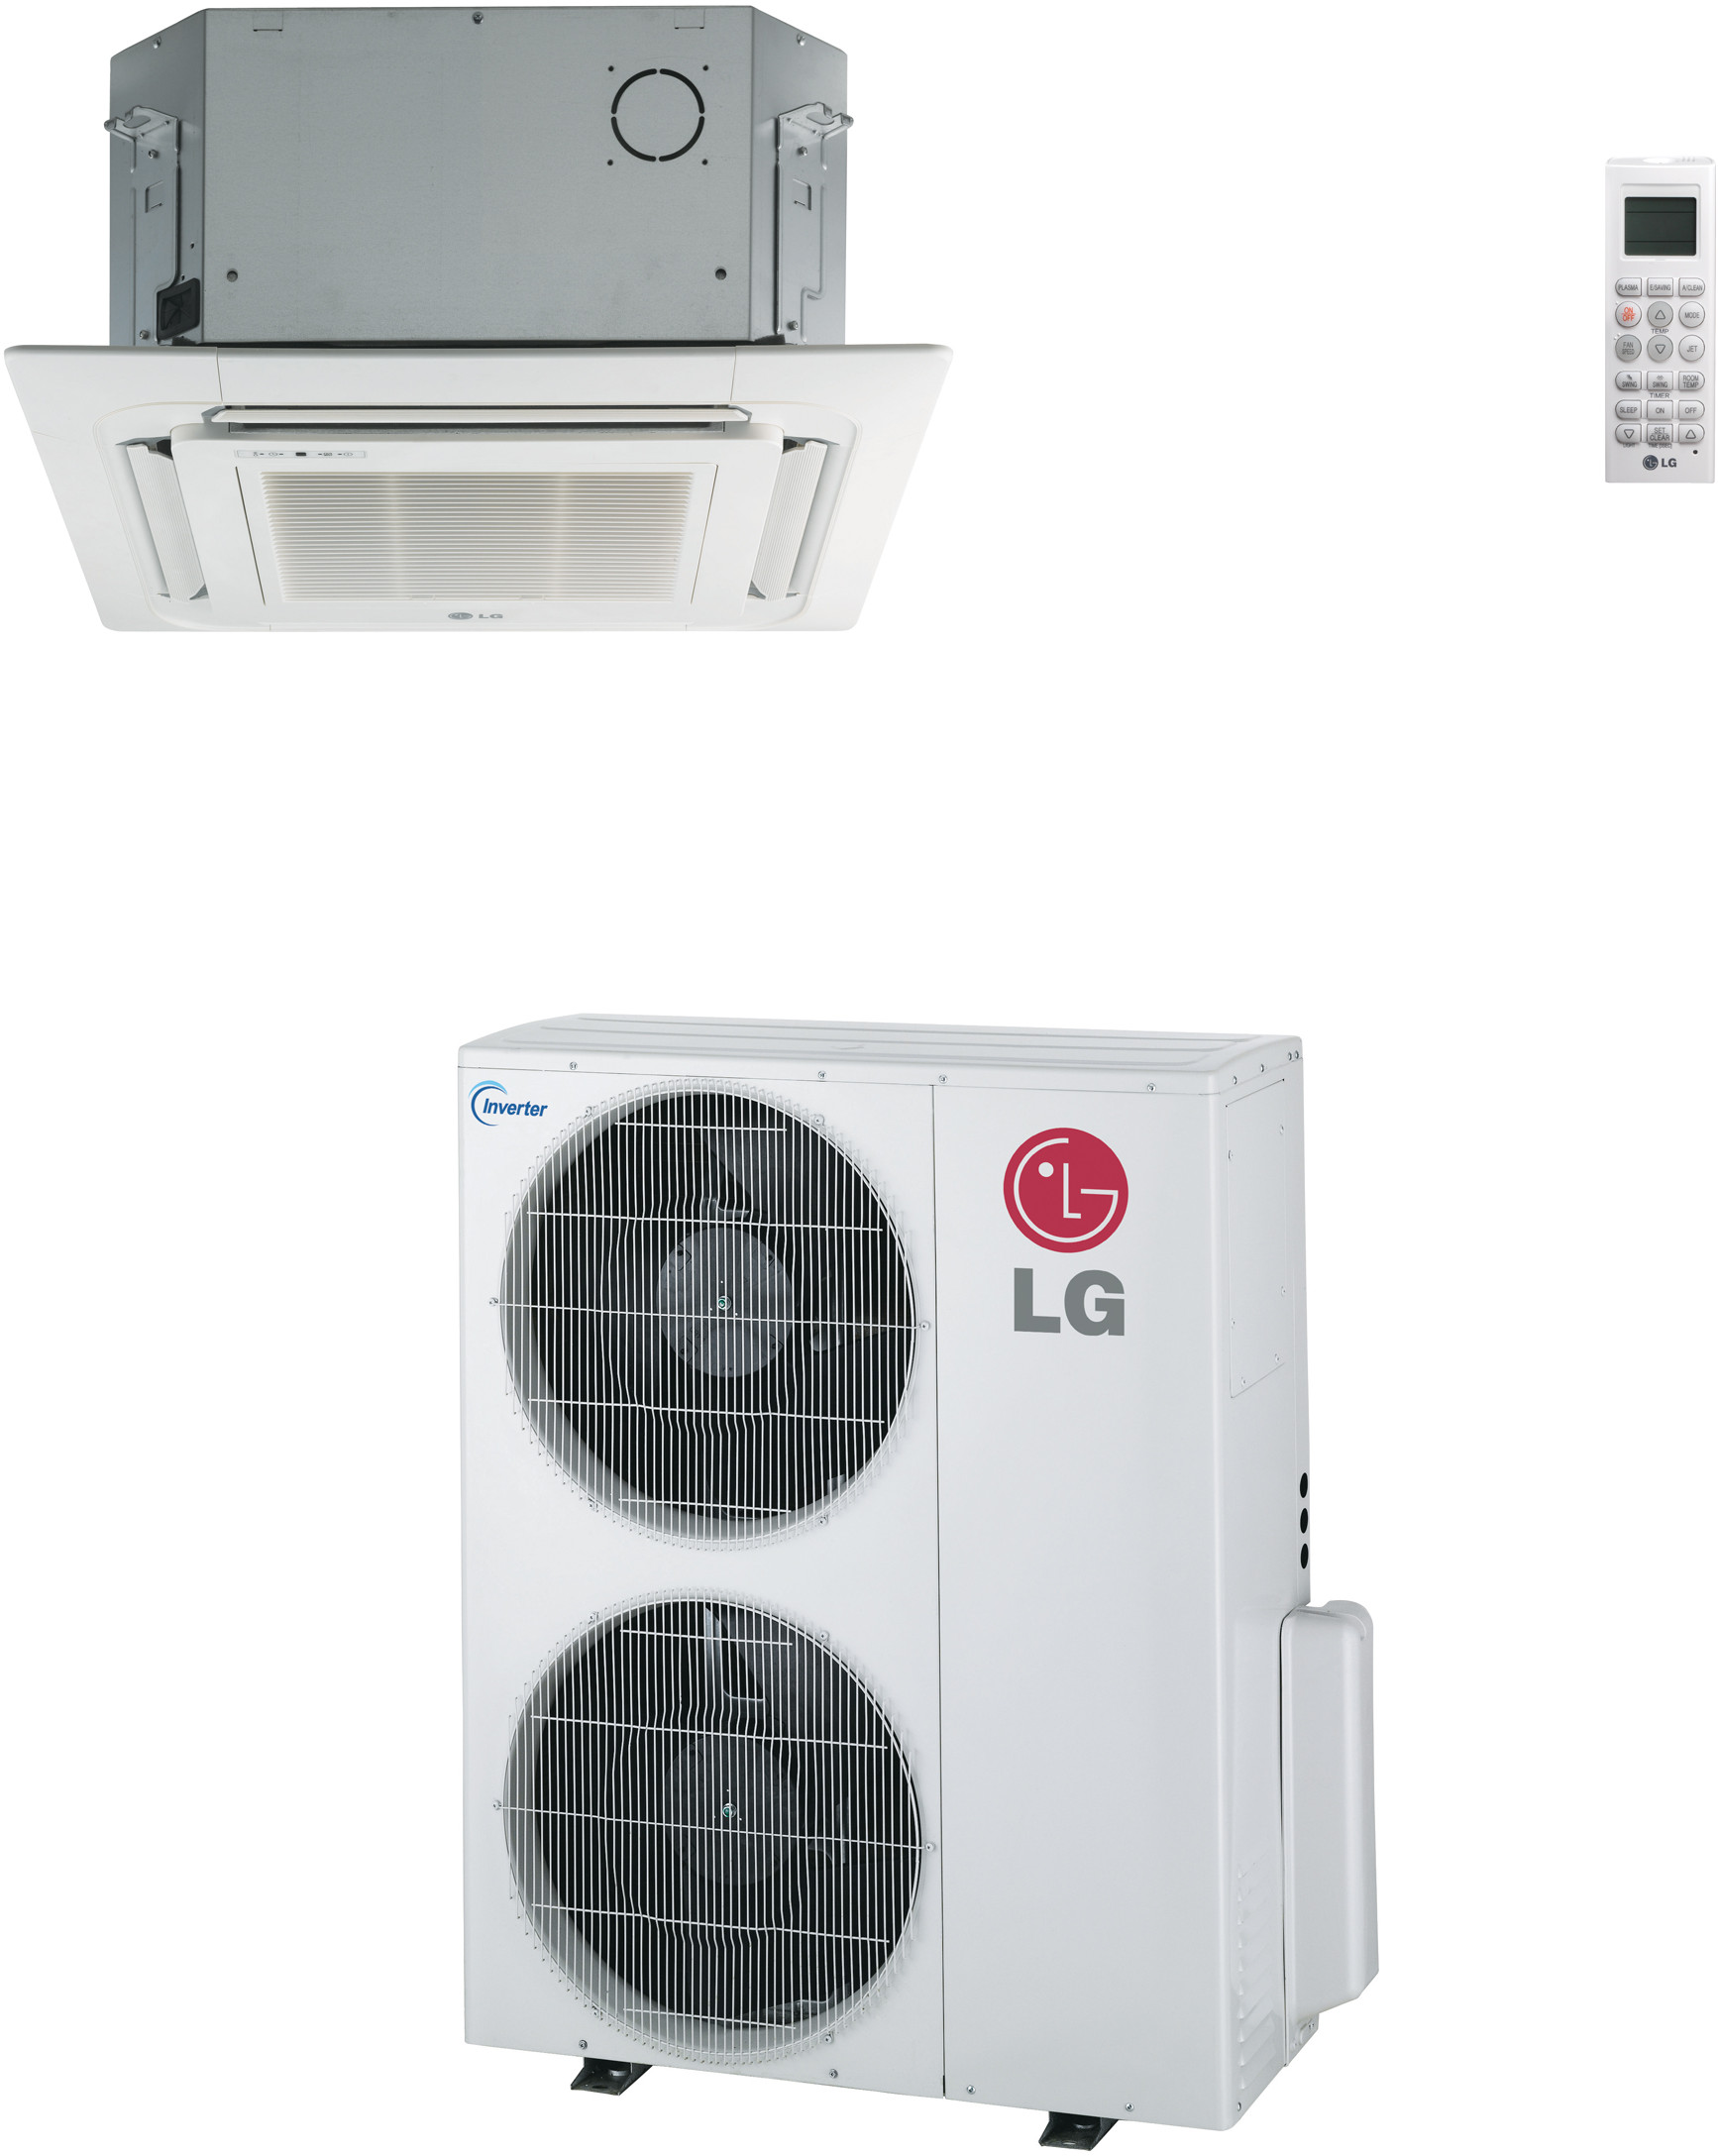 LC367HV 36 000 BTU Single Zone Ceiling Cassette Ductless Split System  #A32841